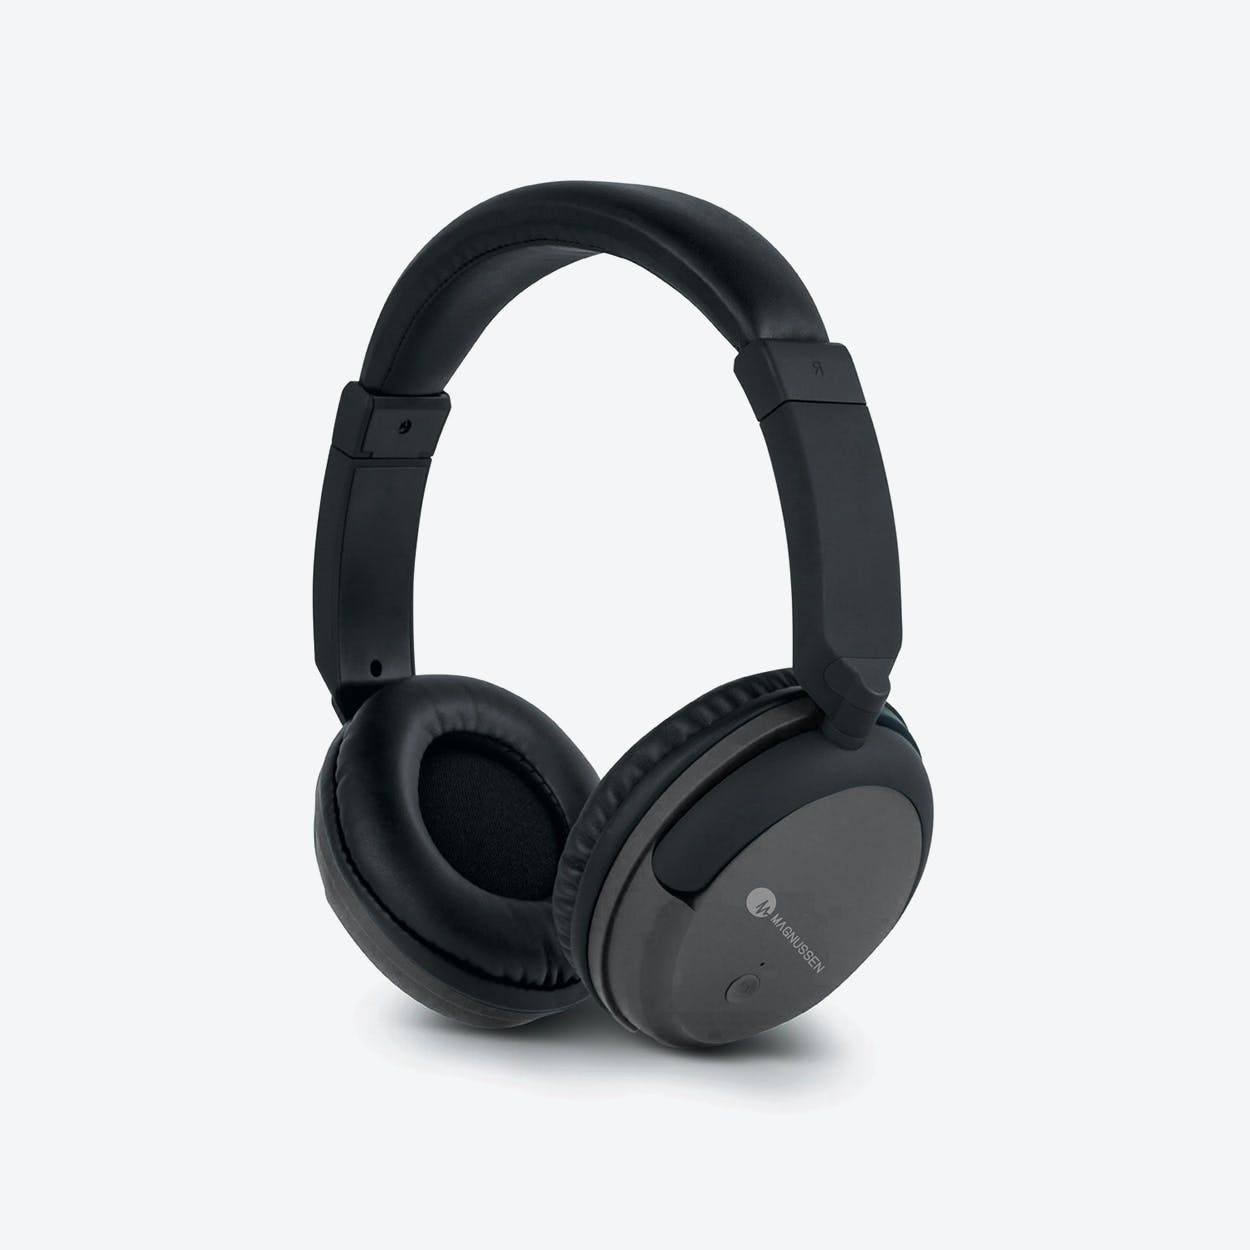 MAGNUSSEN H3 Headphones in Iron Grey